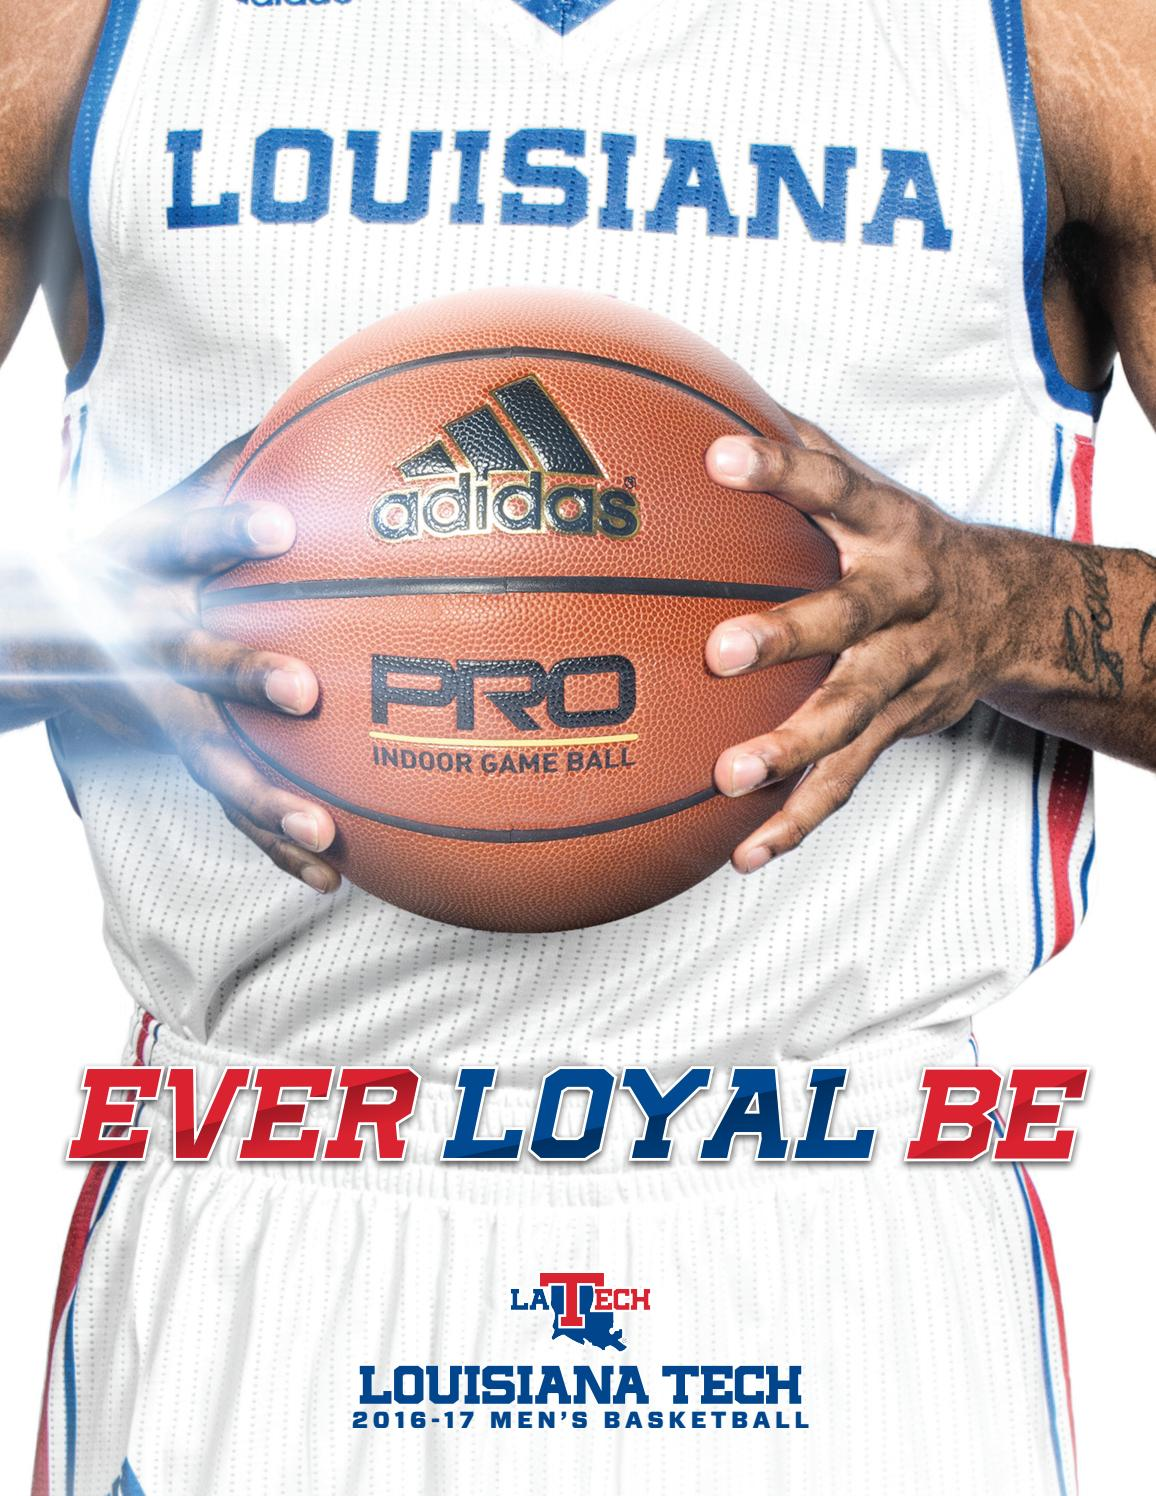 2016-17 Louisiana Tech Men s Basketball Media Guide by Louisiana Tech  Athletics - issuu b9a53326d